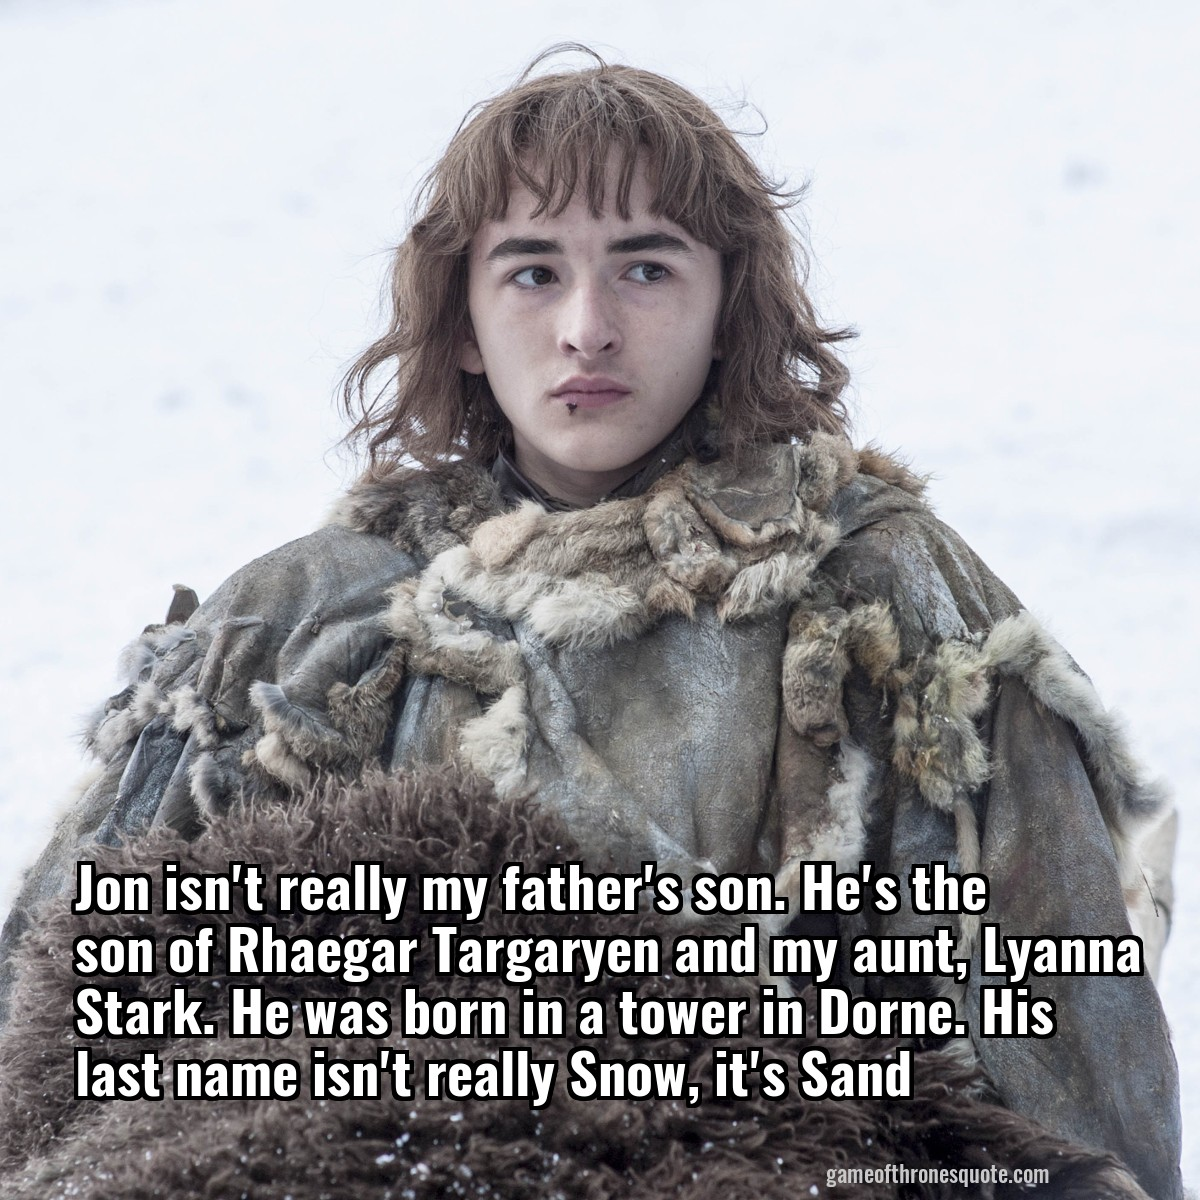 Jon isn't really my father's son. He's the son of Rhaegar Targaryen and my aunt, Lyanna Stark. He was born in a tower in Dorne. His last name isn't really Snow, it's Sand